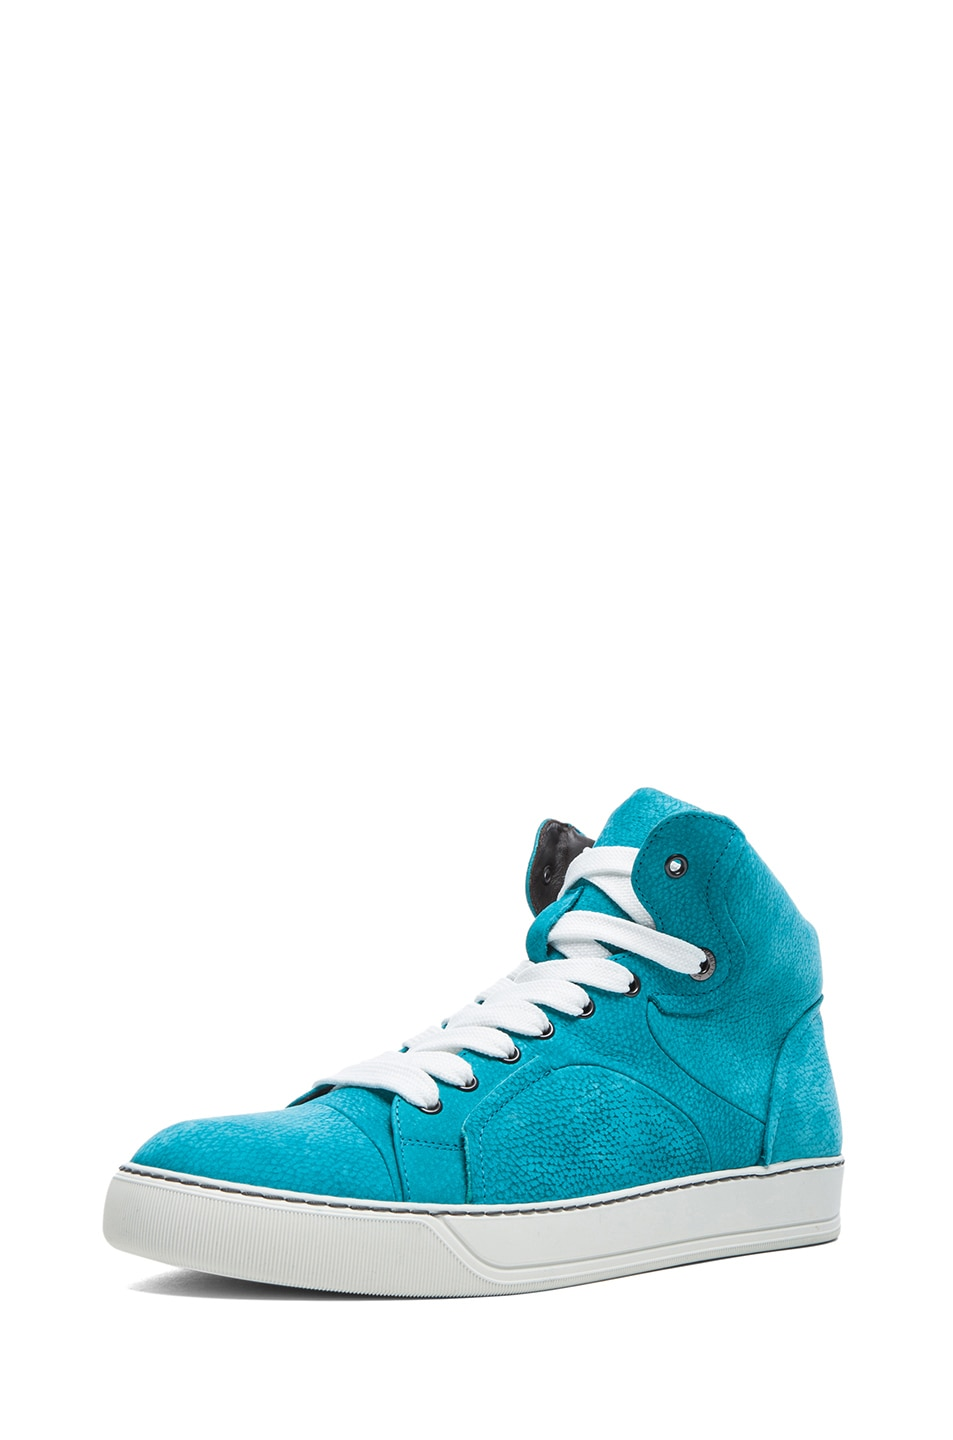 Image 1 of Lanvin Nubucked Bull Calf Mid Top Sneakers in Turquoise